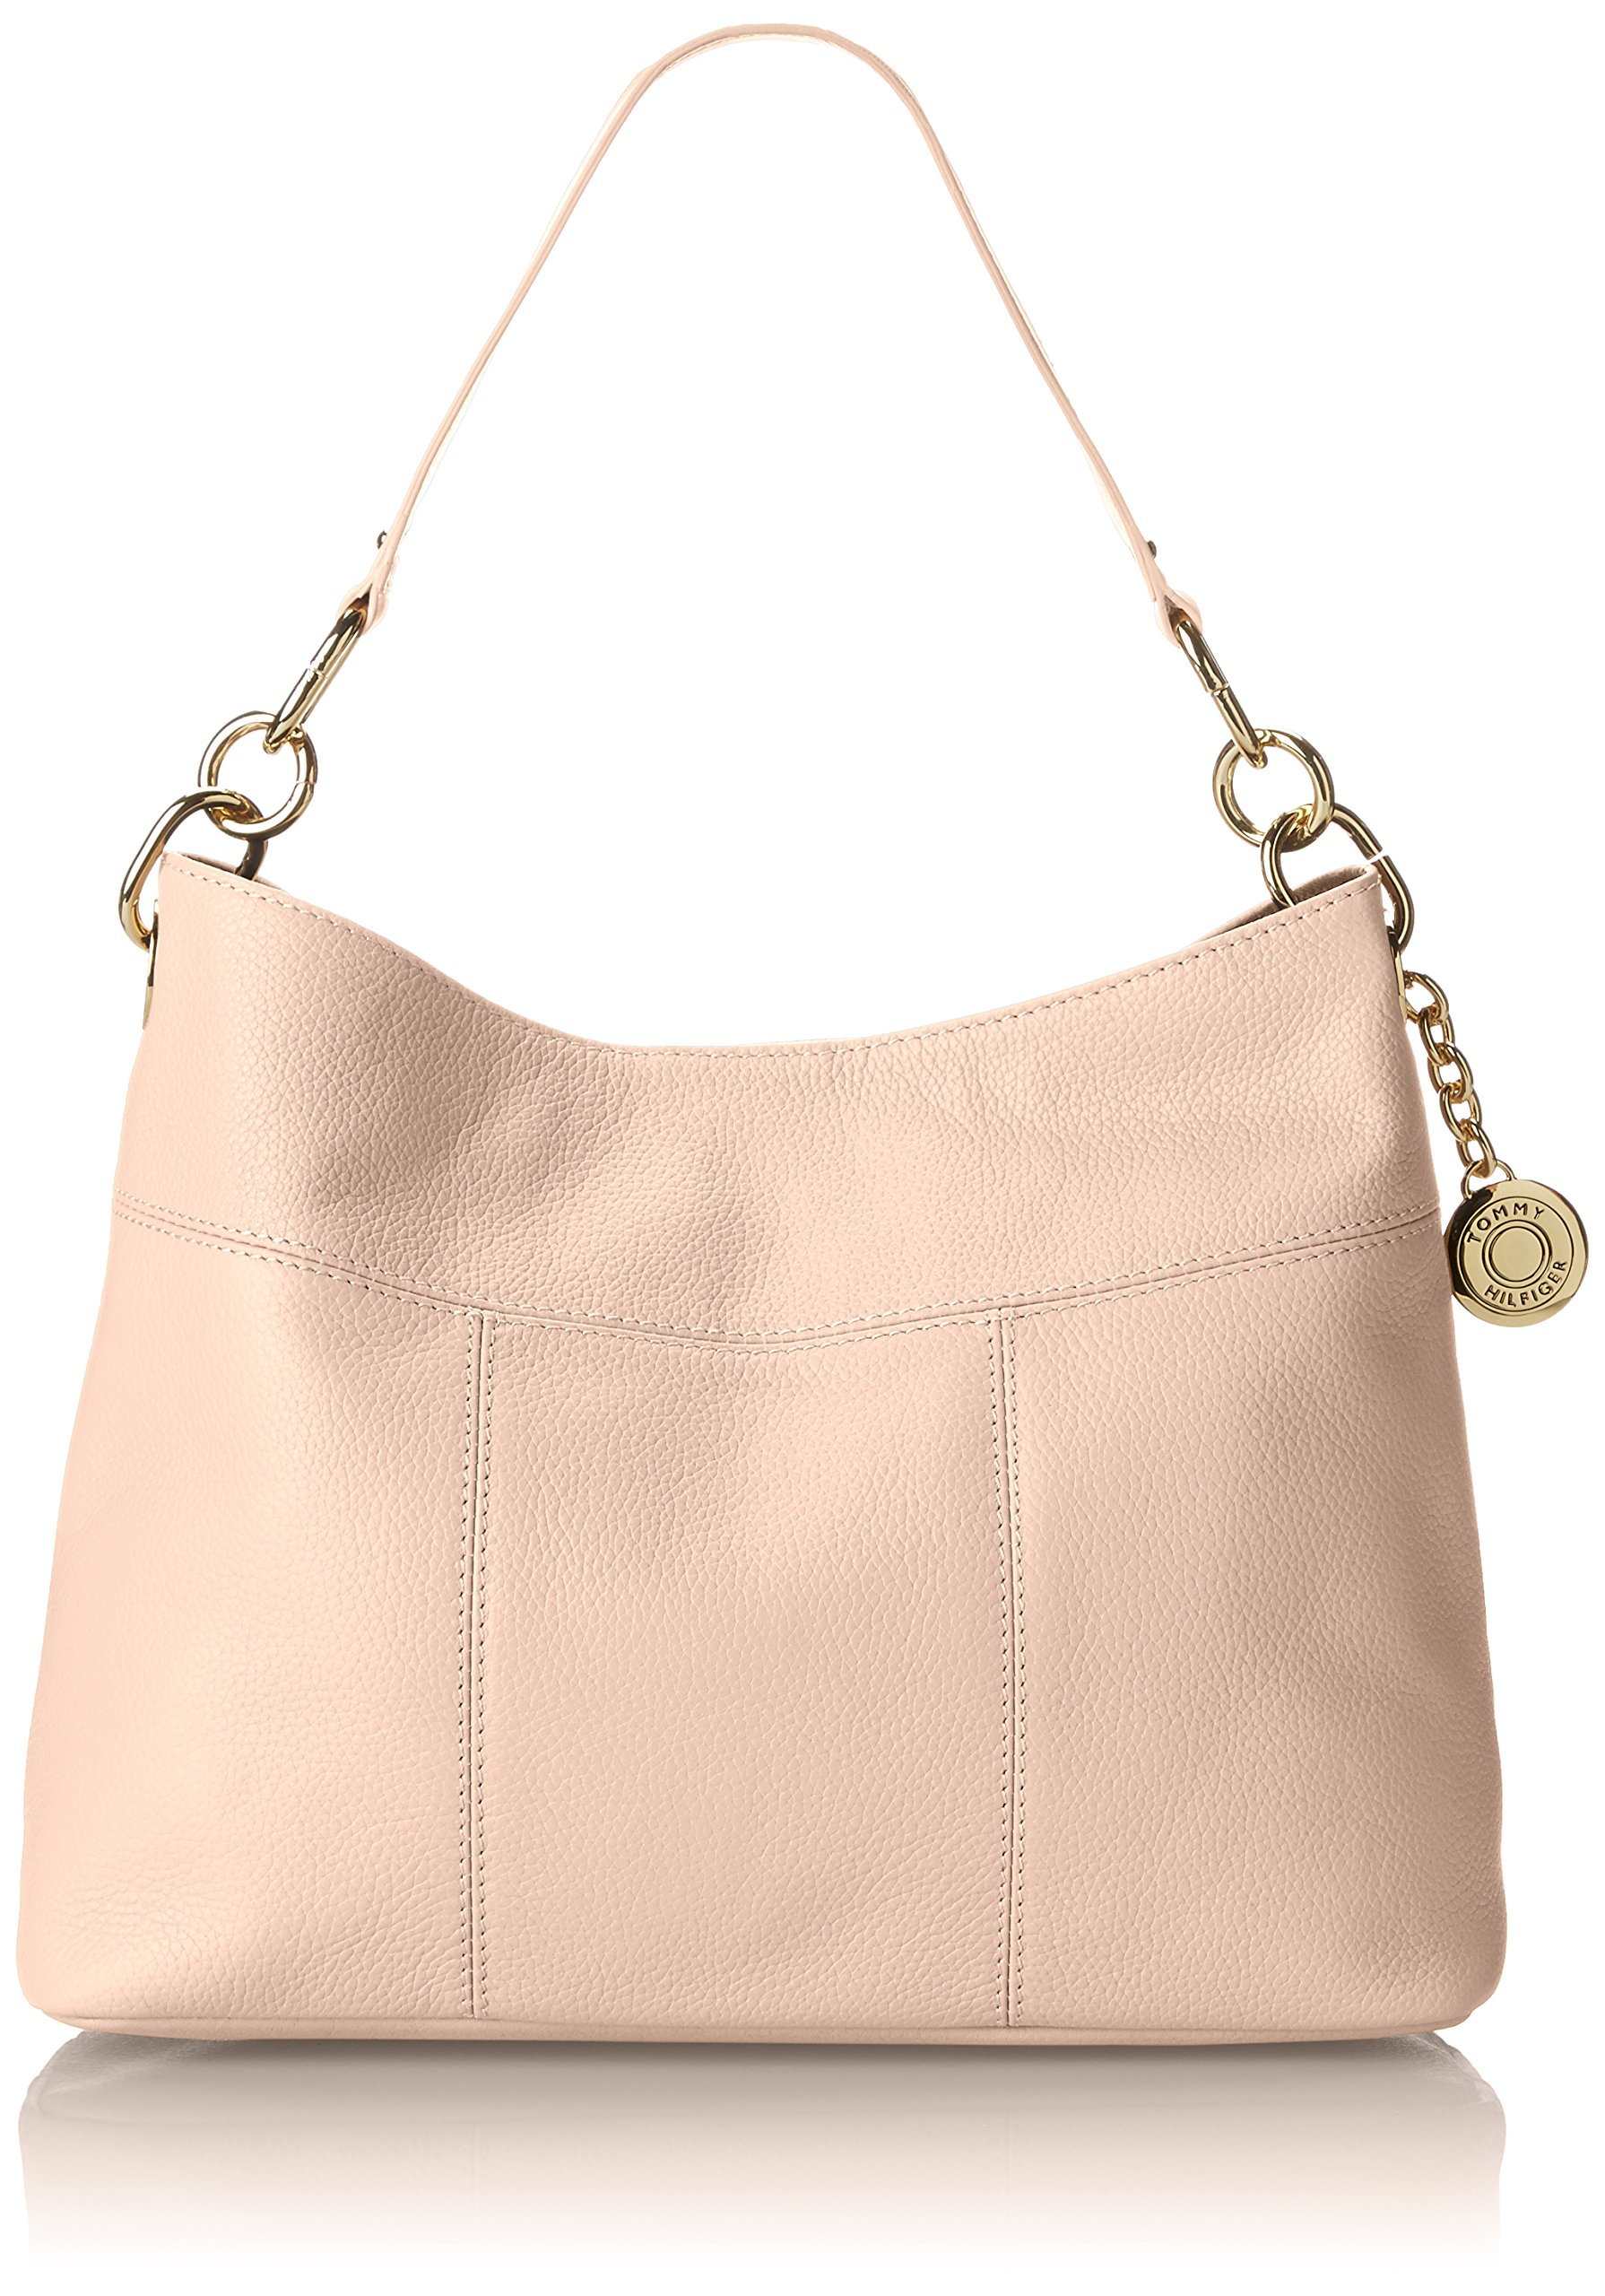 Tommy Hilfiger Purse for Women TH Signature Hobo, Blush